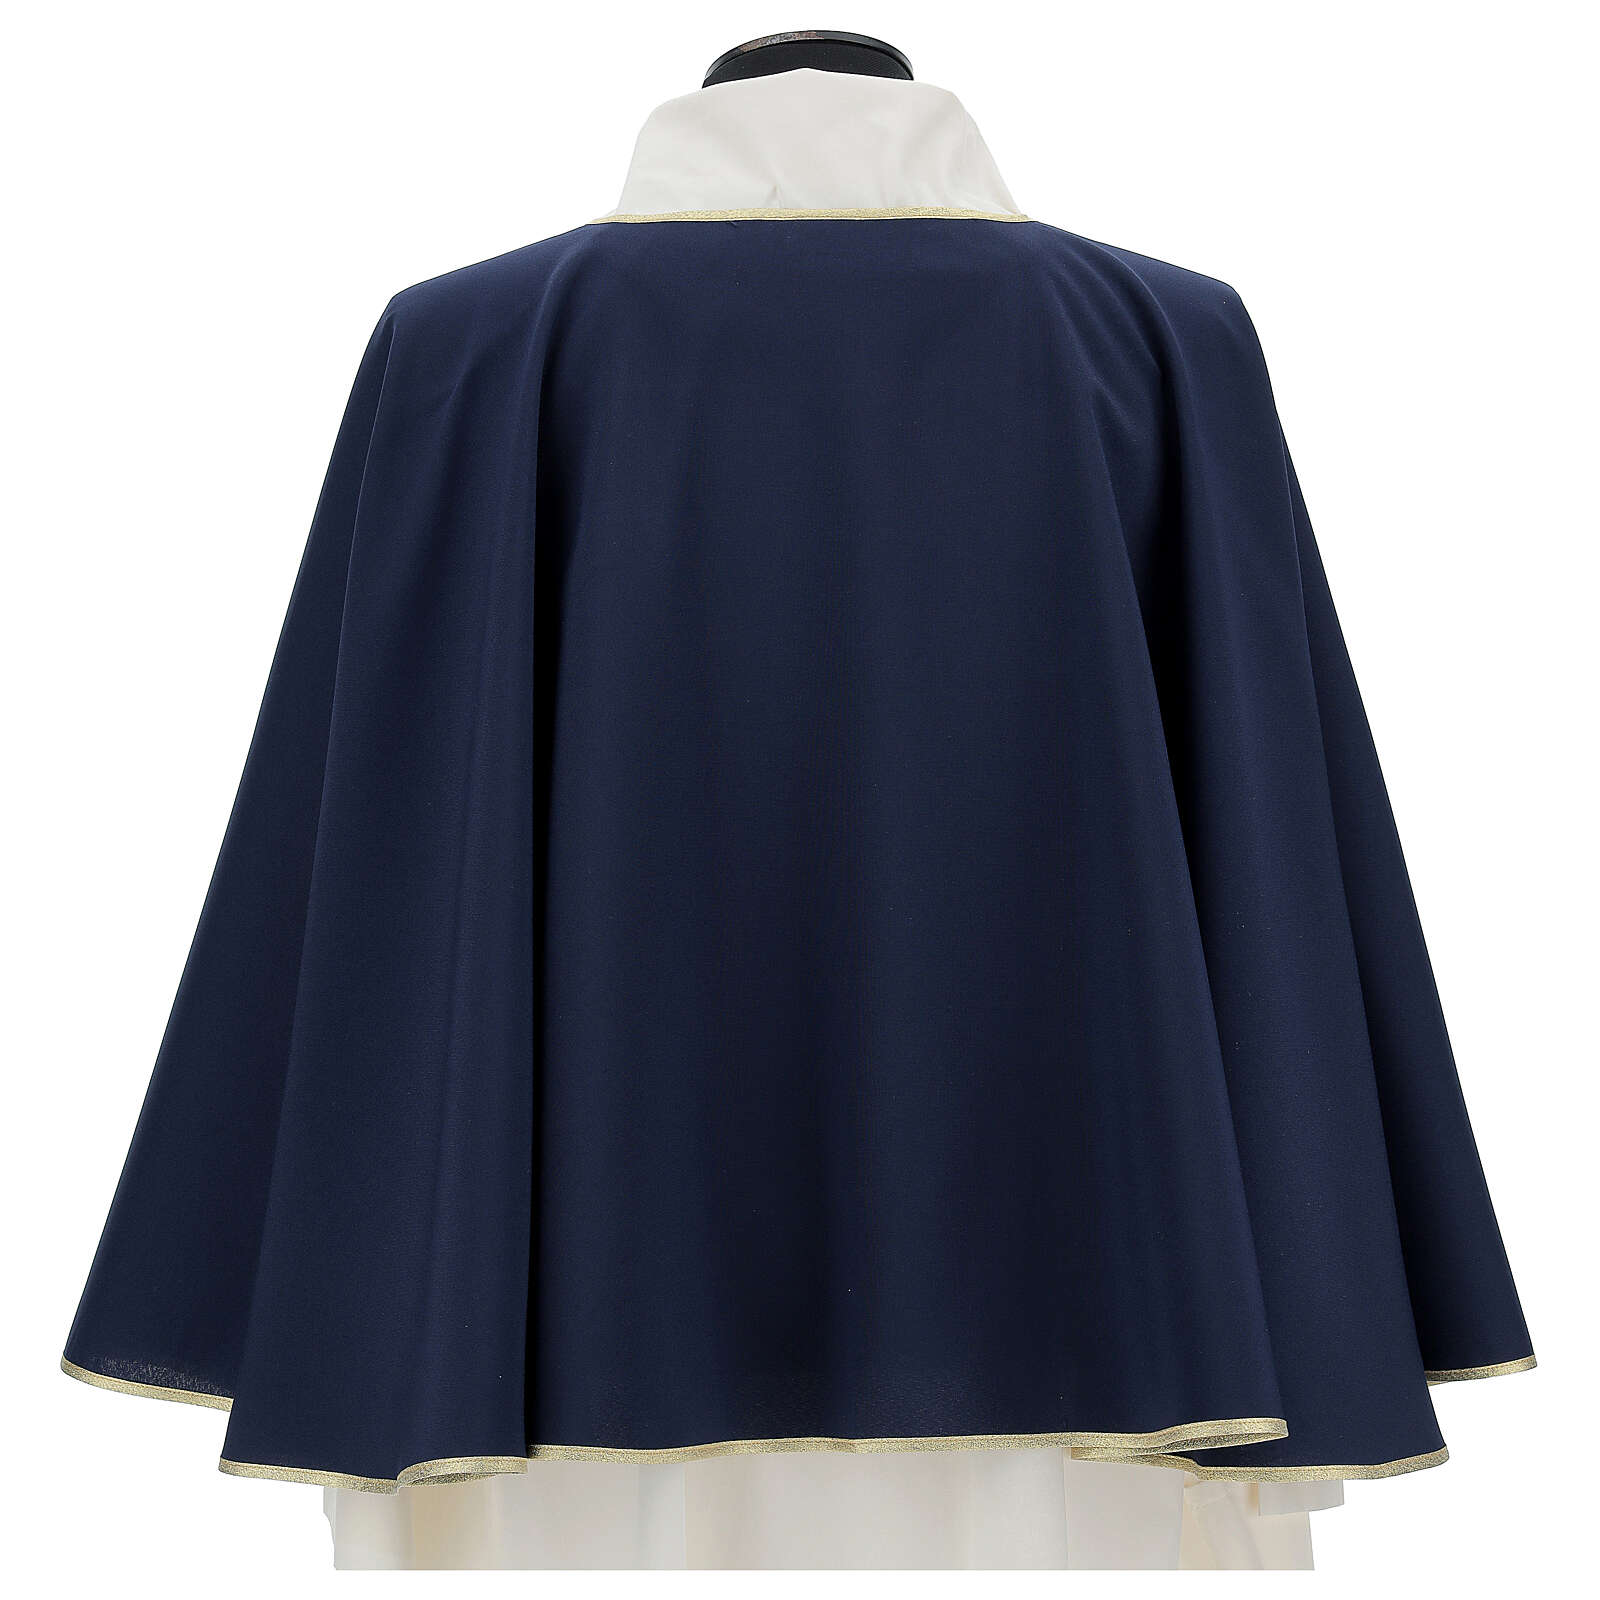 Brotherhood cape in 100% blue polyester 3